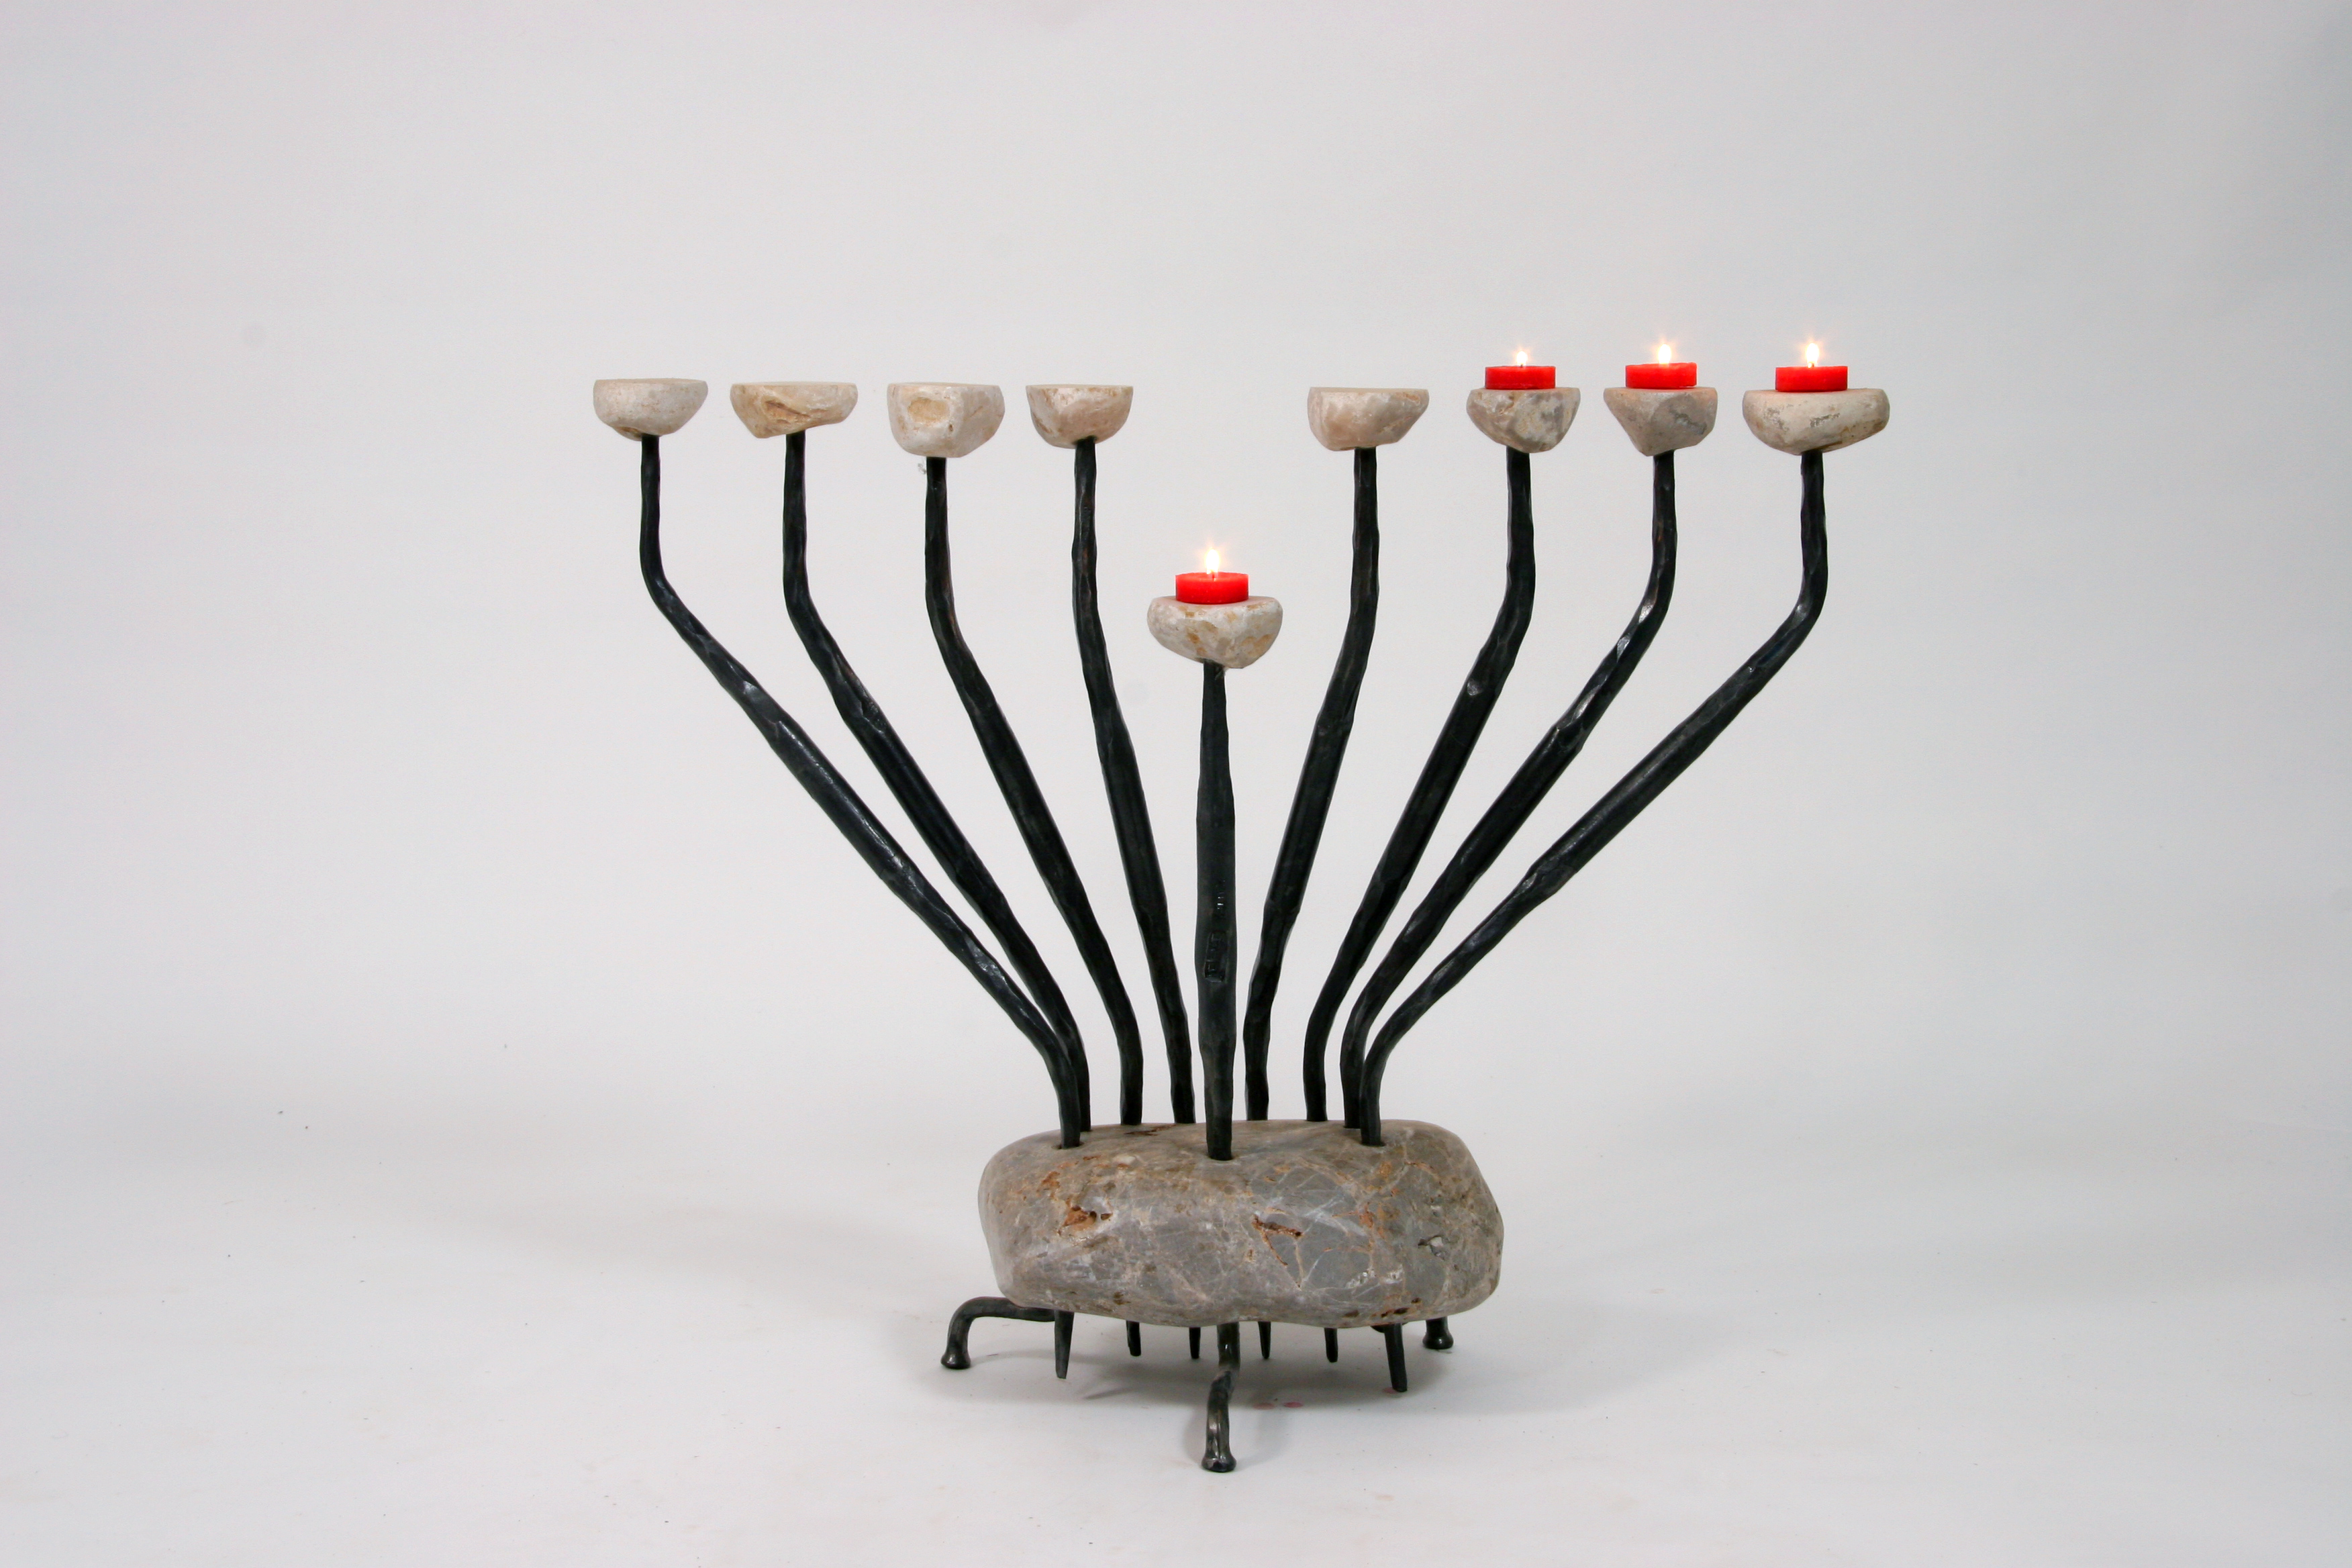 'Pebbles' - Hannukah Menorah of Iron and Stone